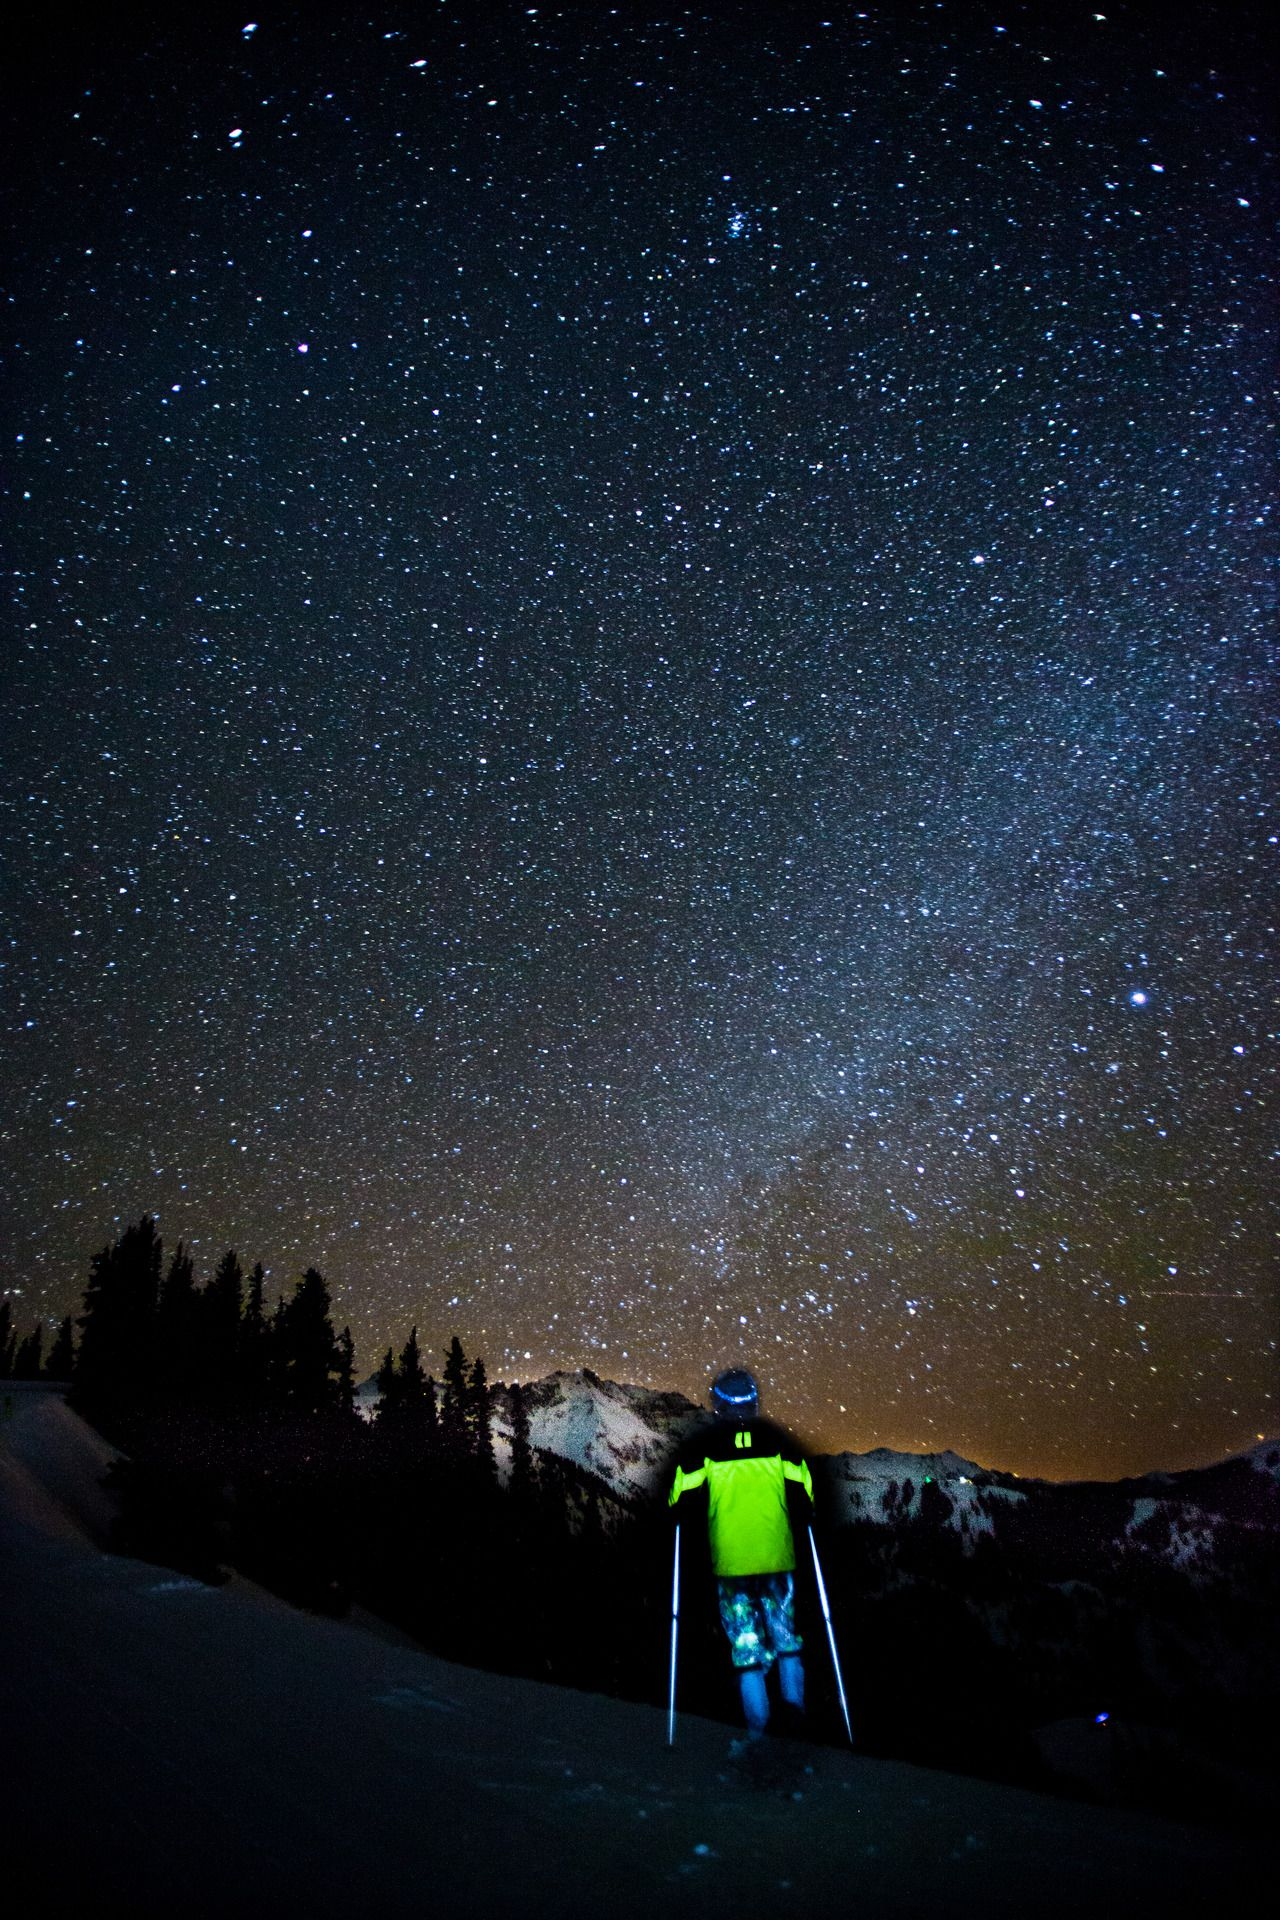 night skiing is amazing. especially with a night sky like in Telluride.